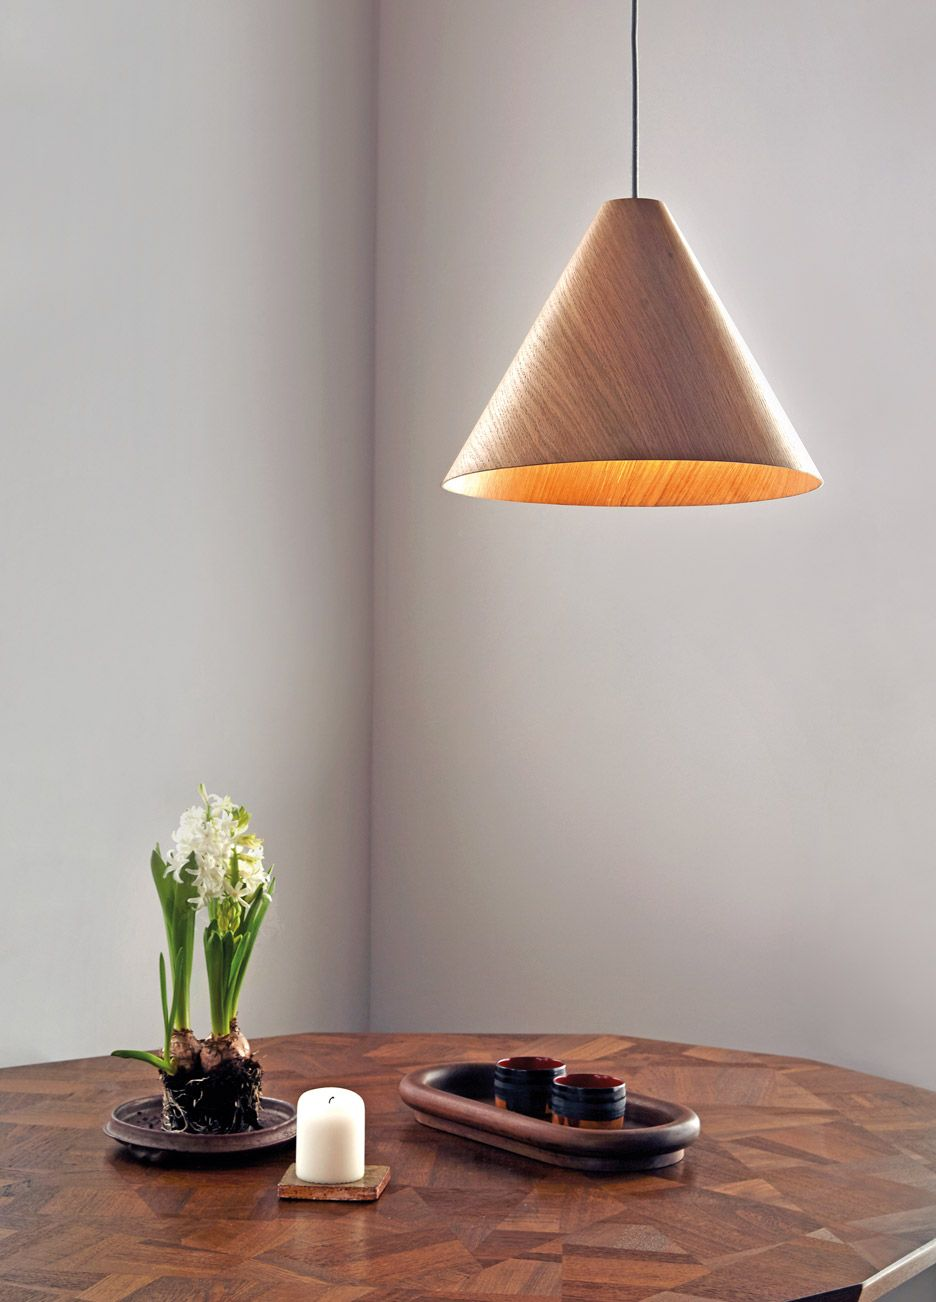 Find Wrong London Lamps At Designlightings Webshop Www Andlight